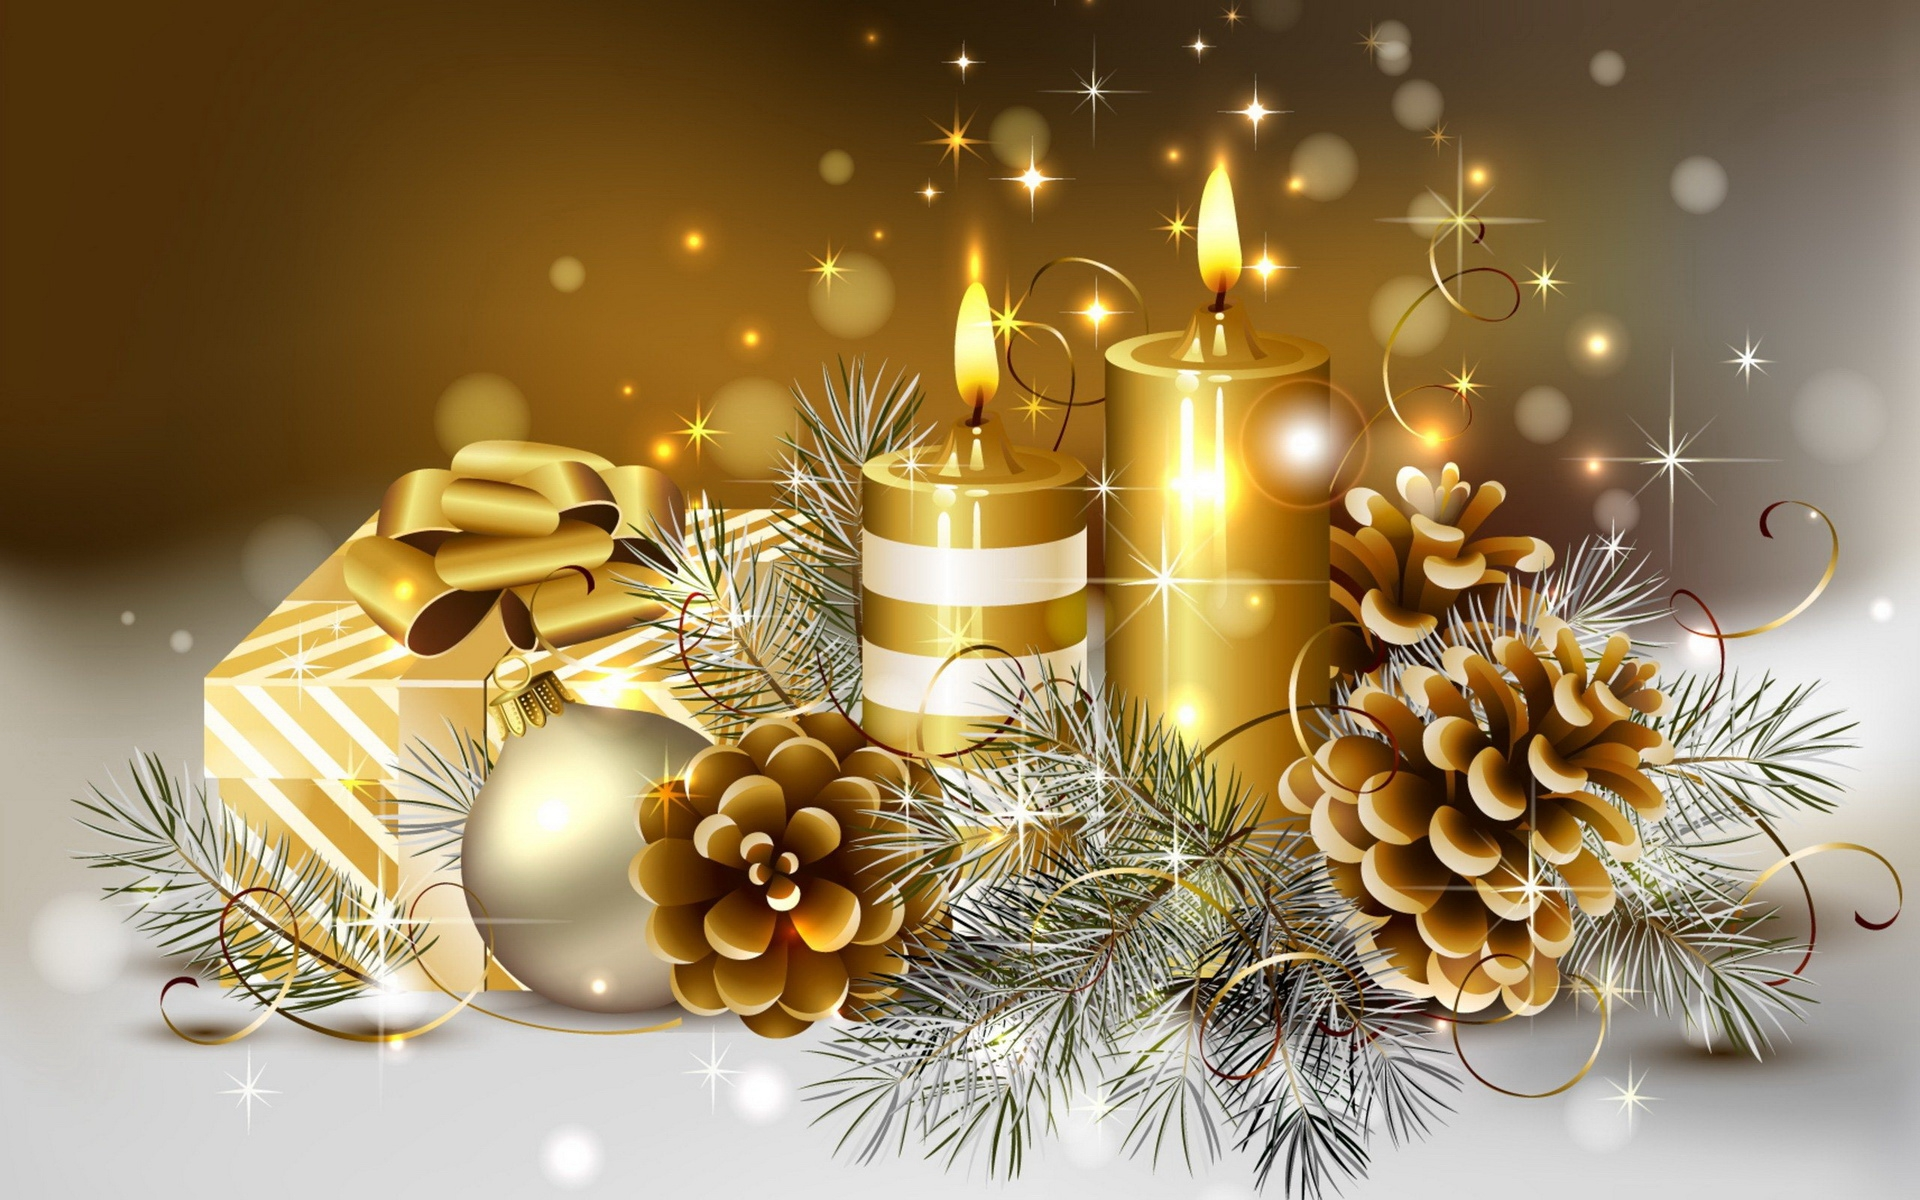 Free Download Free Christian Christmas Wallpaper Backgrounds 1920x1200 For Your Desktop Mobile Tablet Explore 50 Religious Christmas Wallpaper Christmas Backgrounds Religious Wallpaper Backgrounds Free Download Hd Christian Desktop Wallpaper